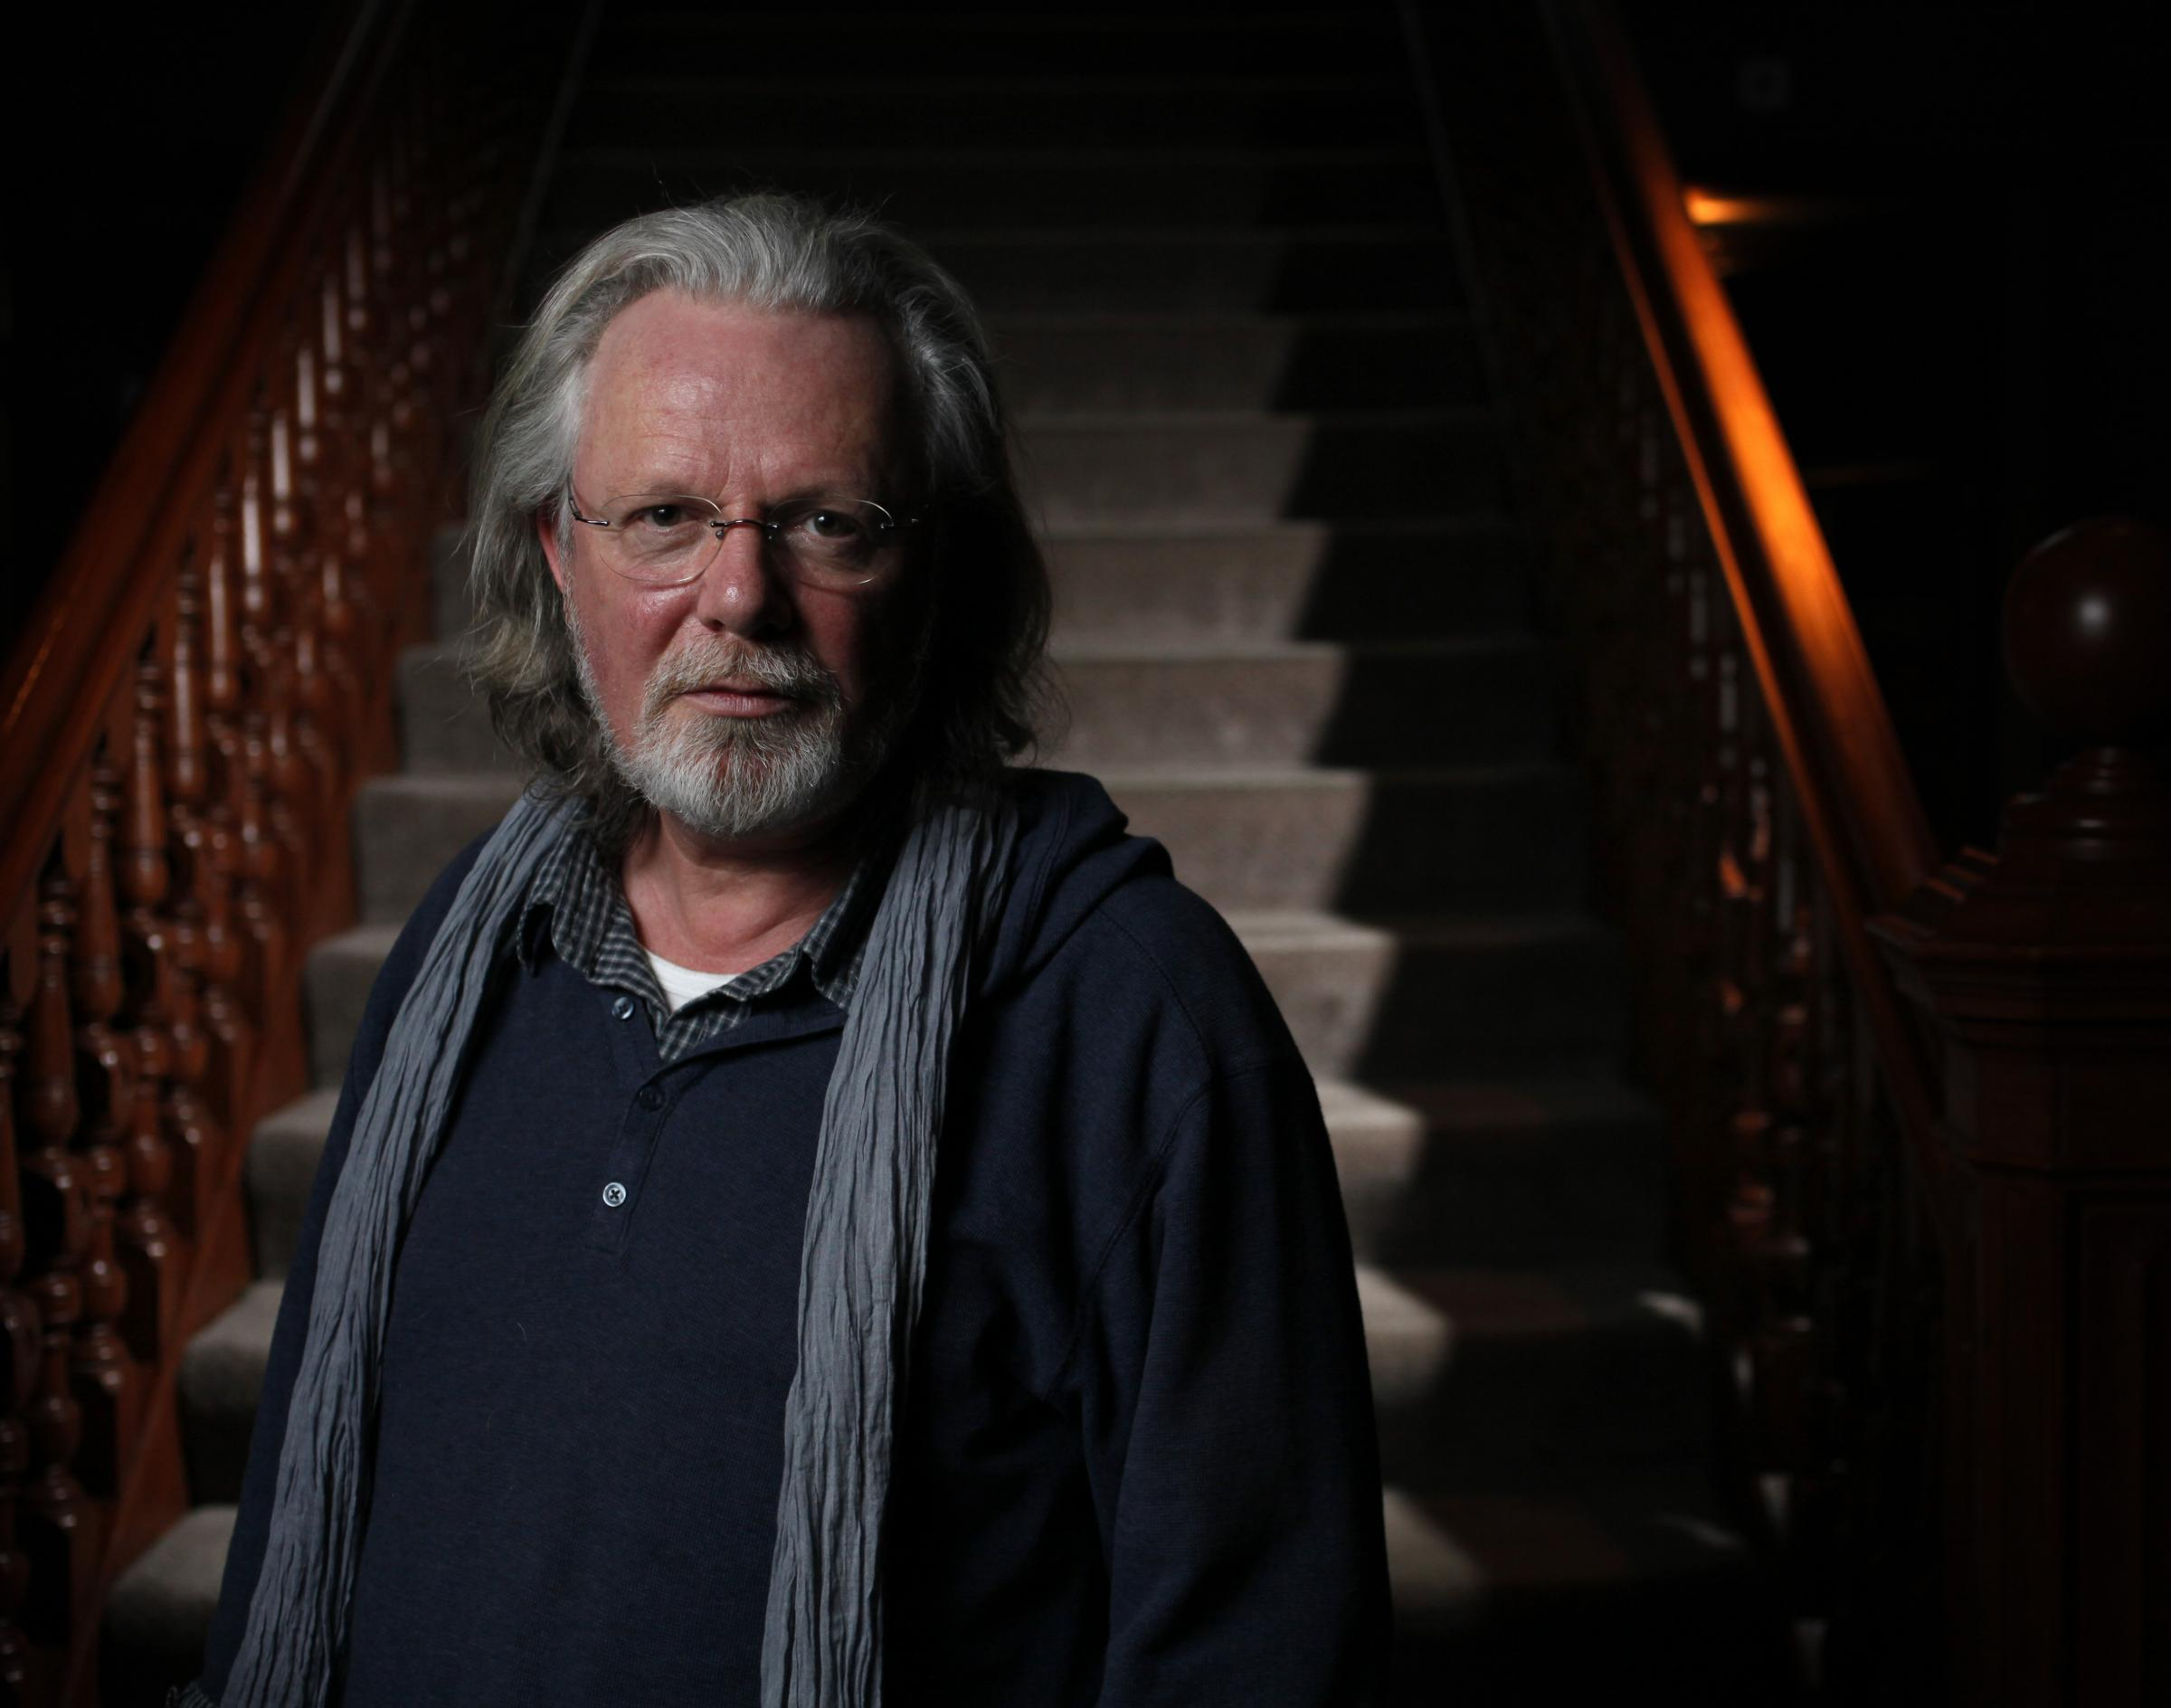 Author Peter May: I was invited back to talk to the kids, and the headmaster whispered: 'Don't tell them you were expelled'